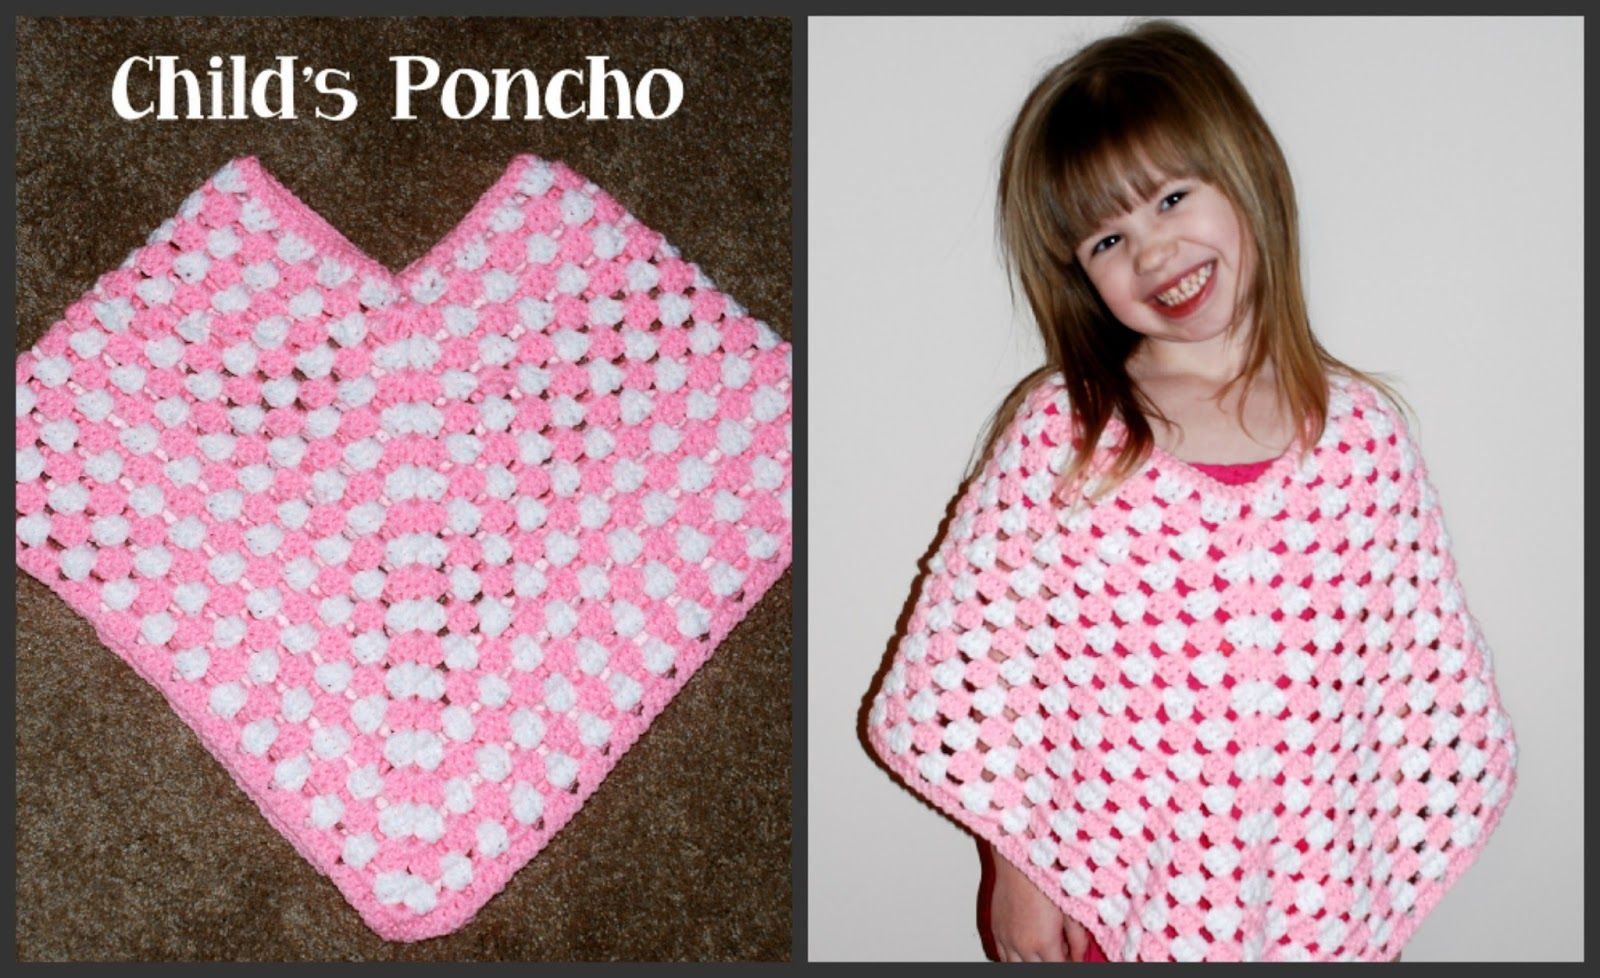 Crochet Child's Poncho Tutorial with Video